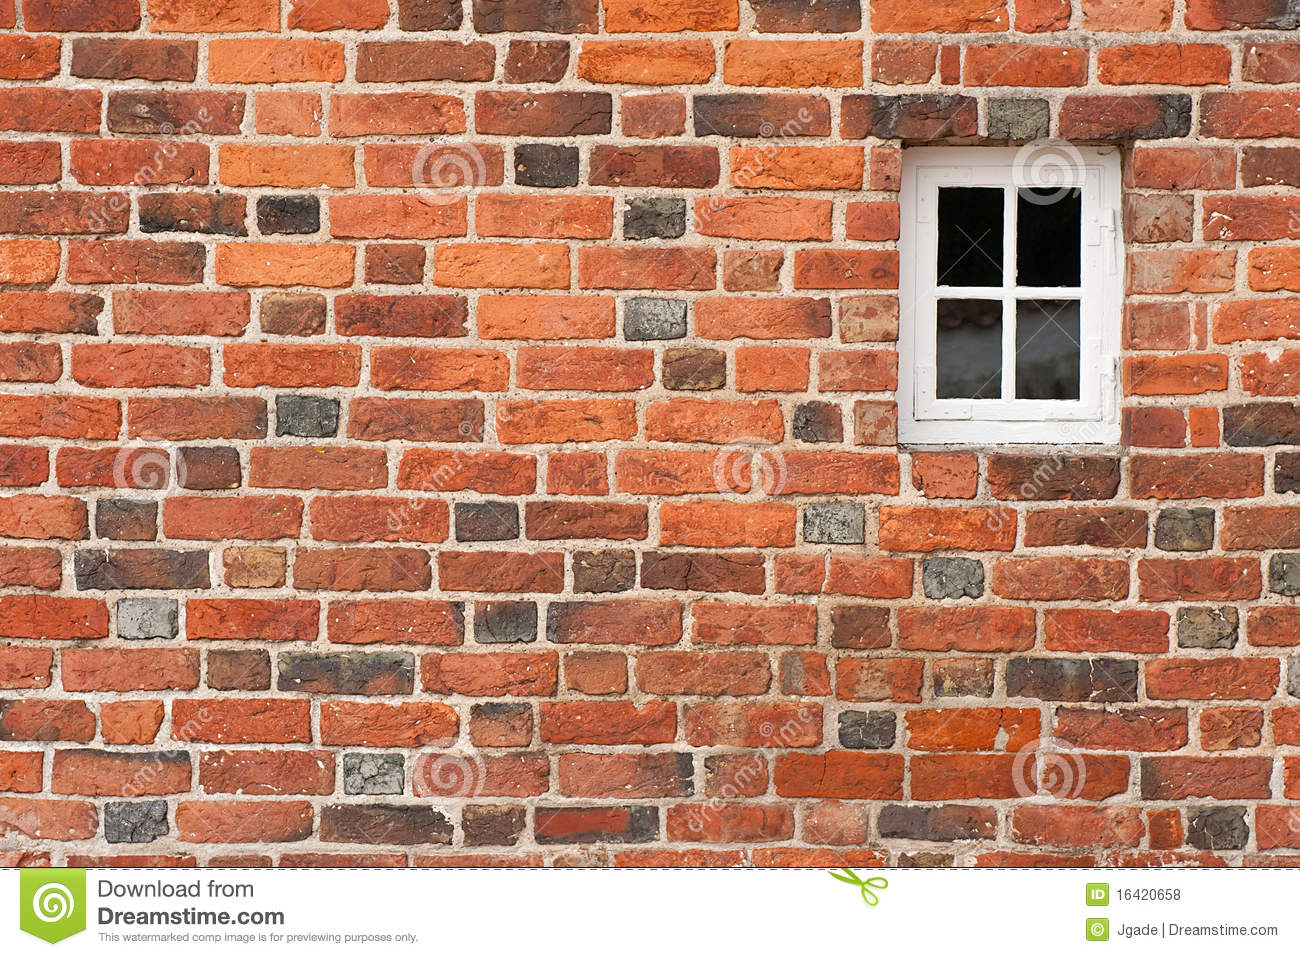 how to build a window in a brick wall